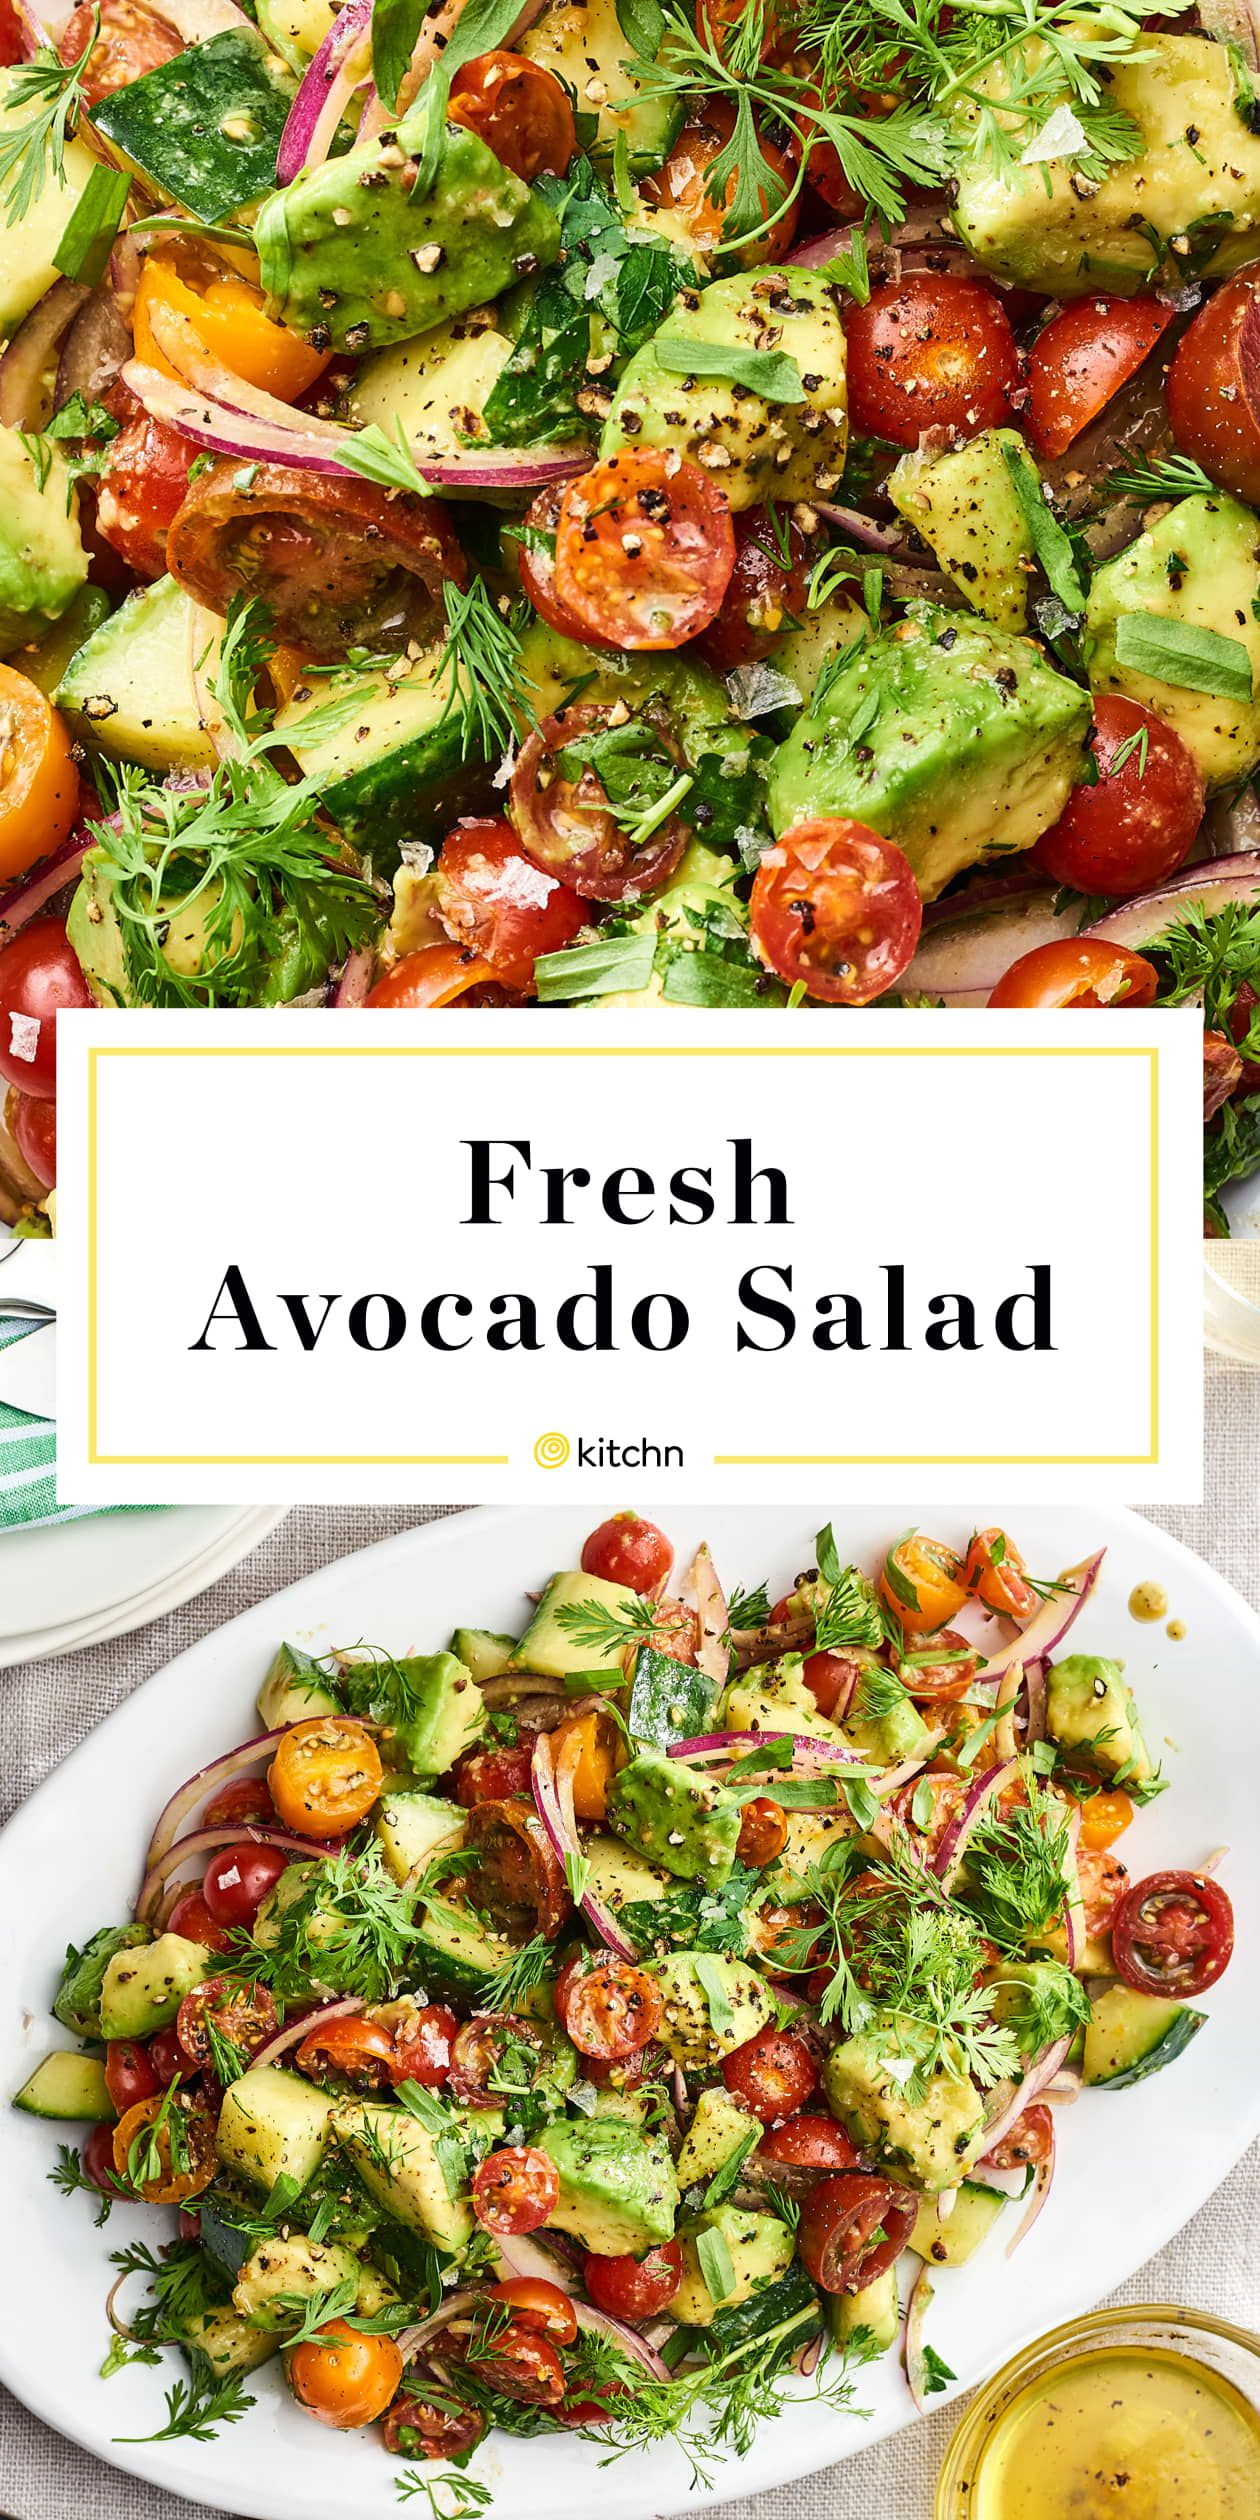 Photo of Recipe: Avocado Salad with Tomatoes and Herbs